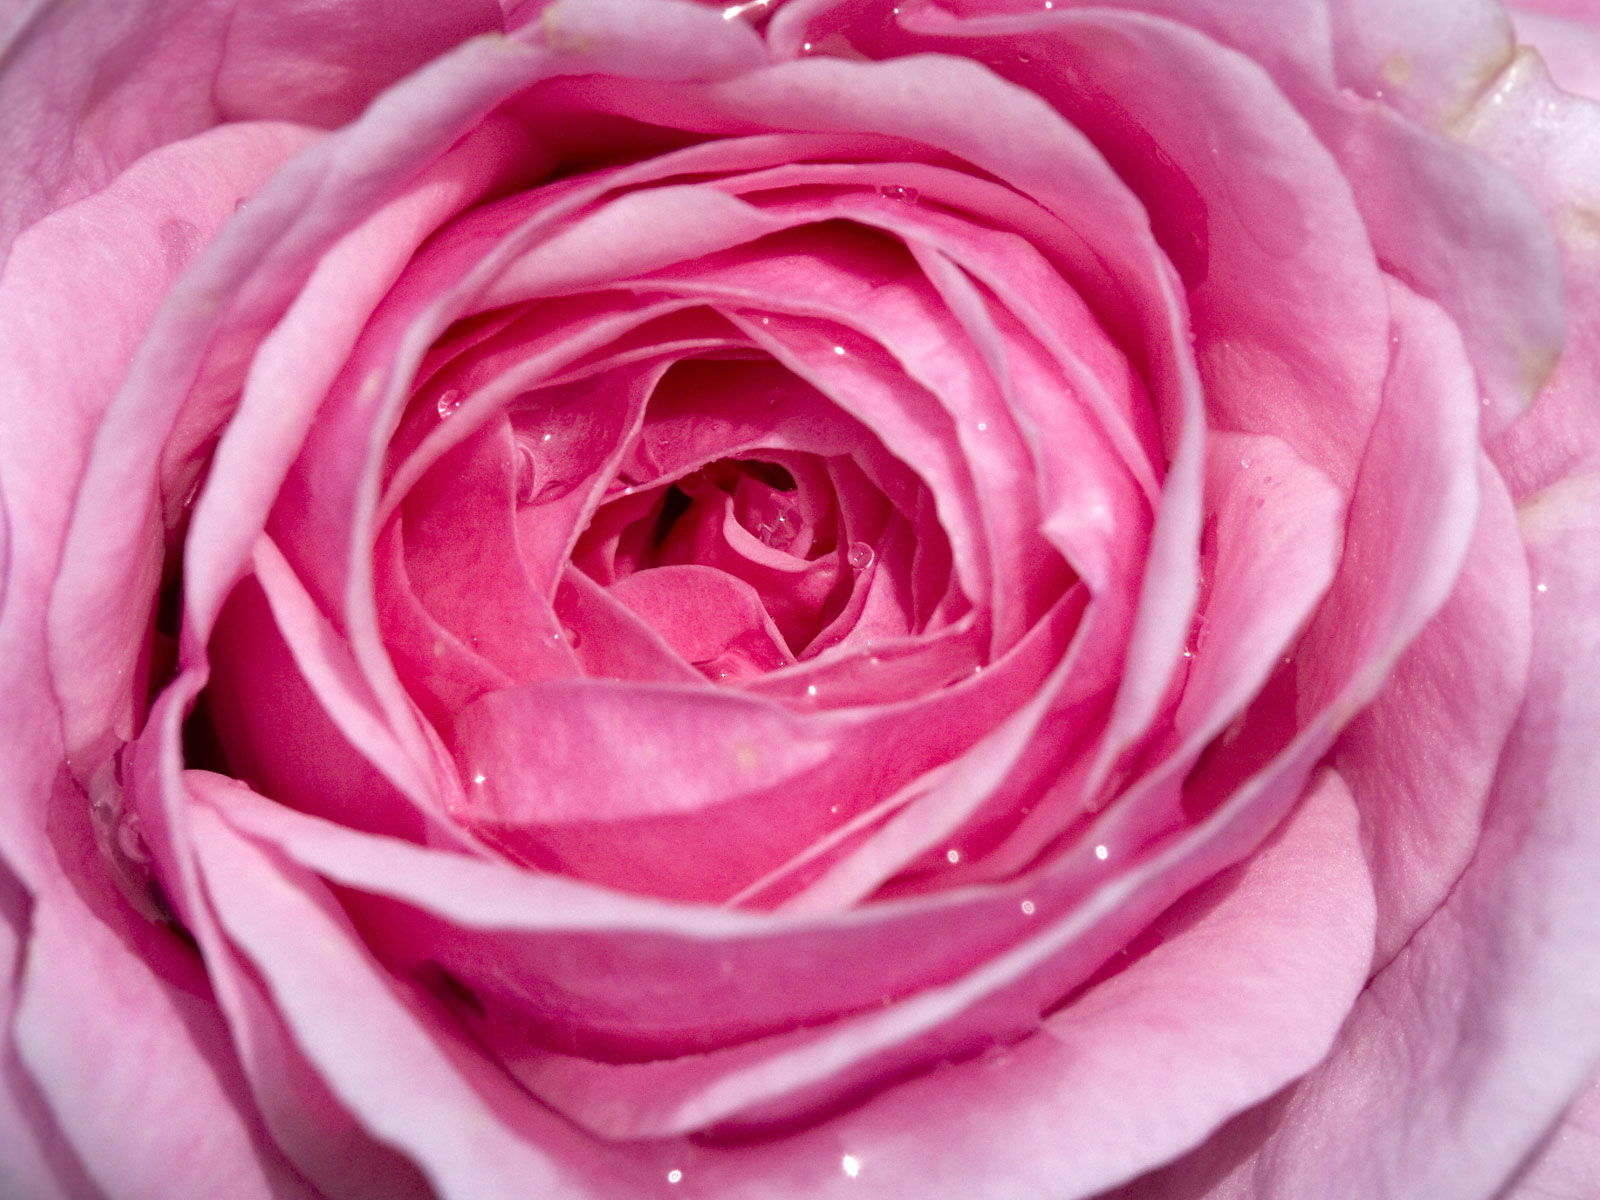 Beautifull flowers 2011 pink rose background - Pink rose black background wallpaper ...